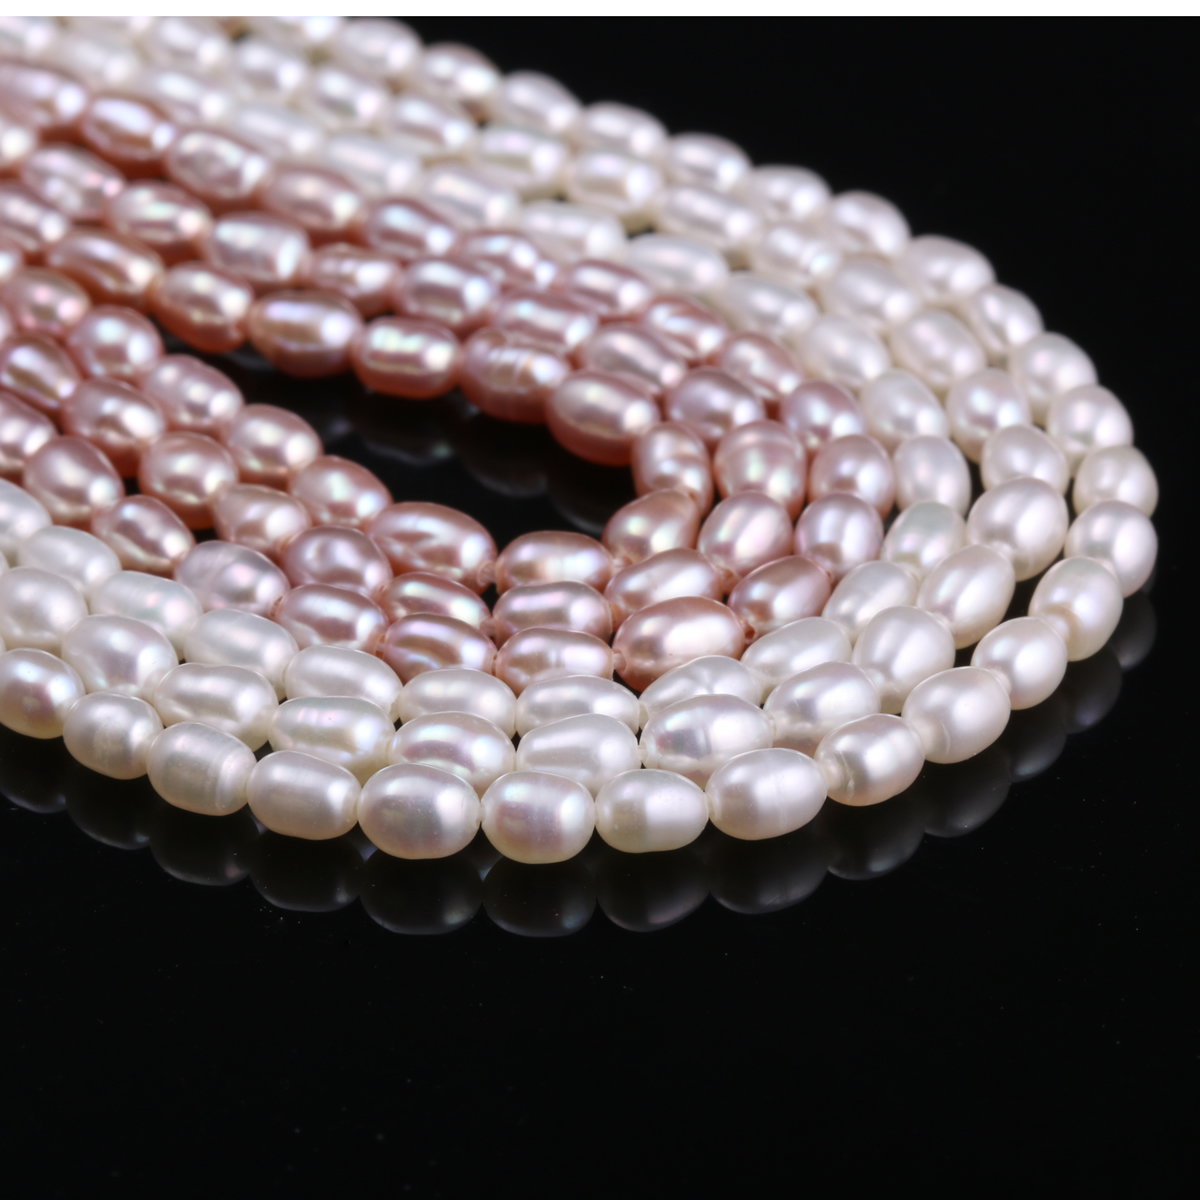 2 5 3mm White Rice Shape Natural Freshwater Pearls Beads Punch Loose Beads for DIY Women Elegant Necklace Bracelet Jewelry 13 quot in Beads from Jewelry amp Accessories